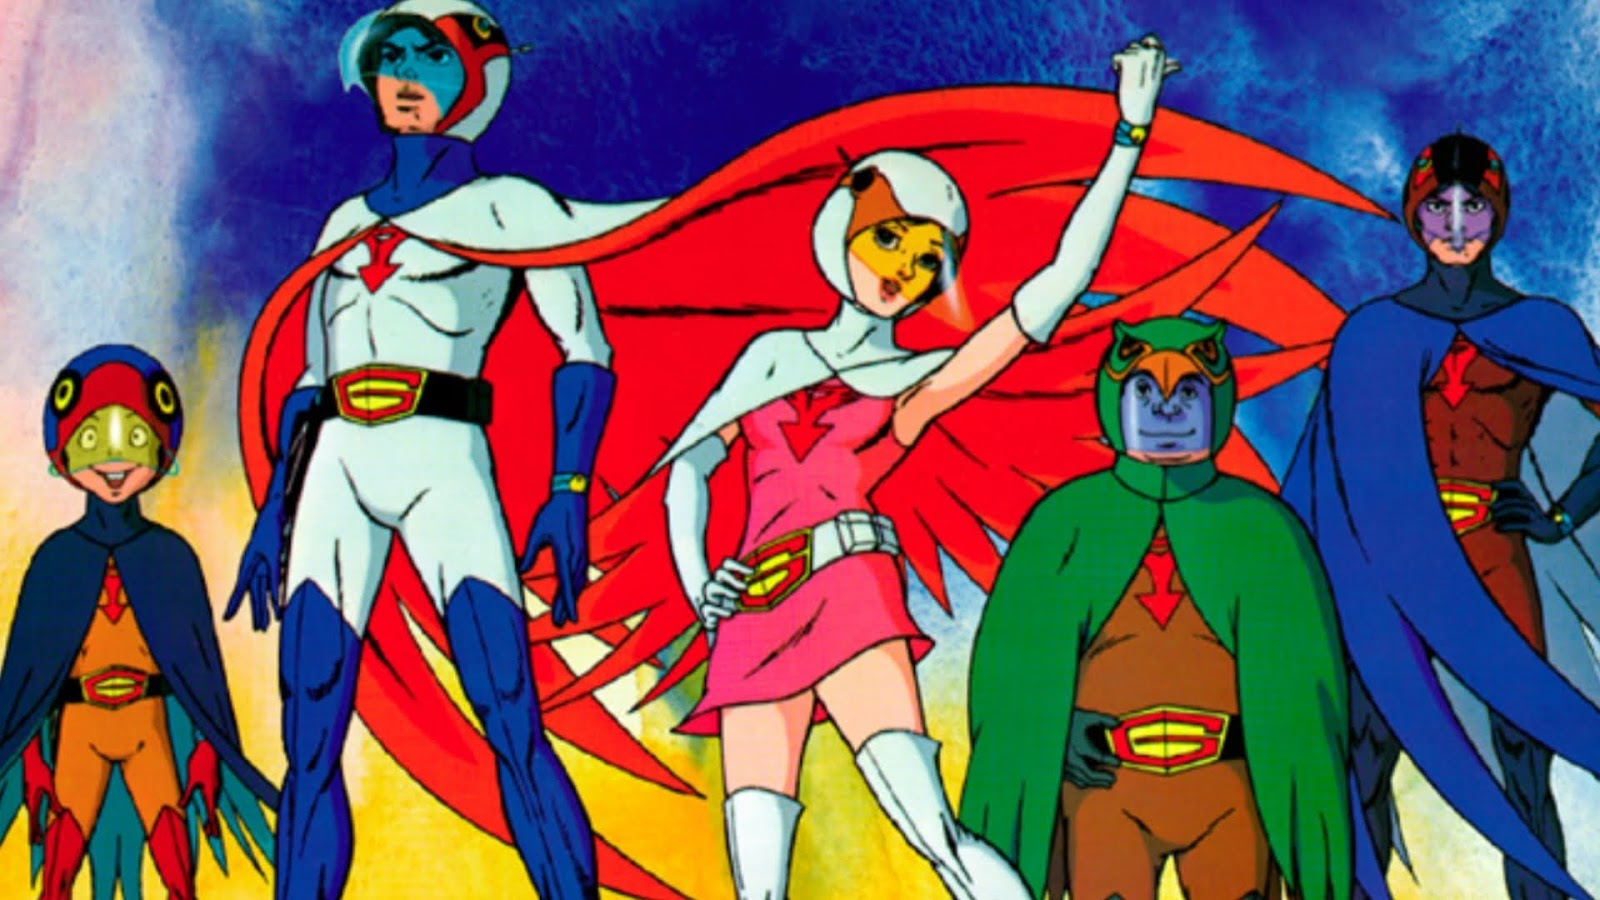 G Force Cartoon Characters : Image gallery g force anime